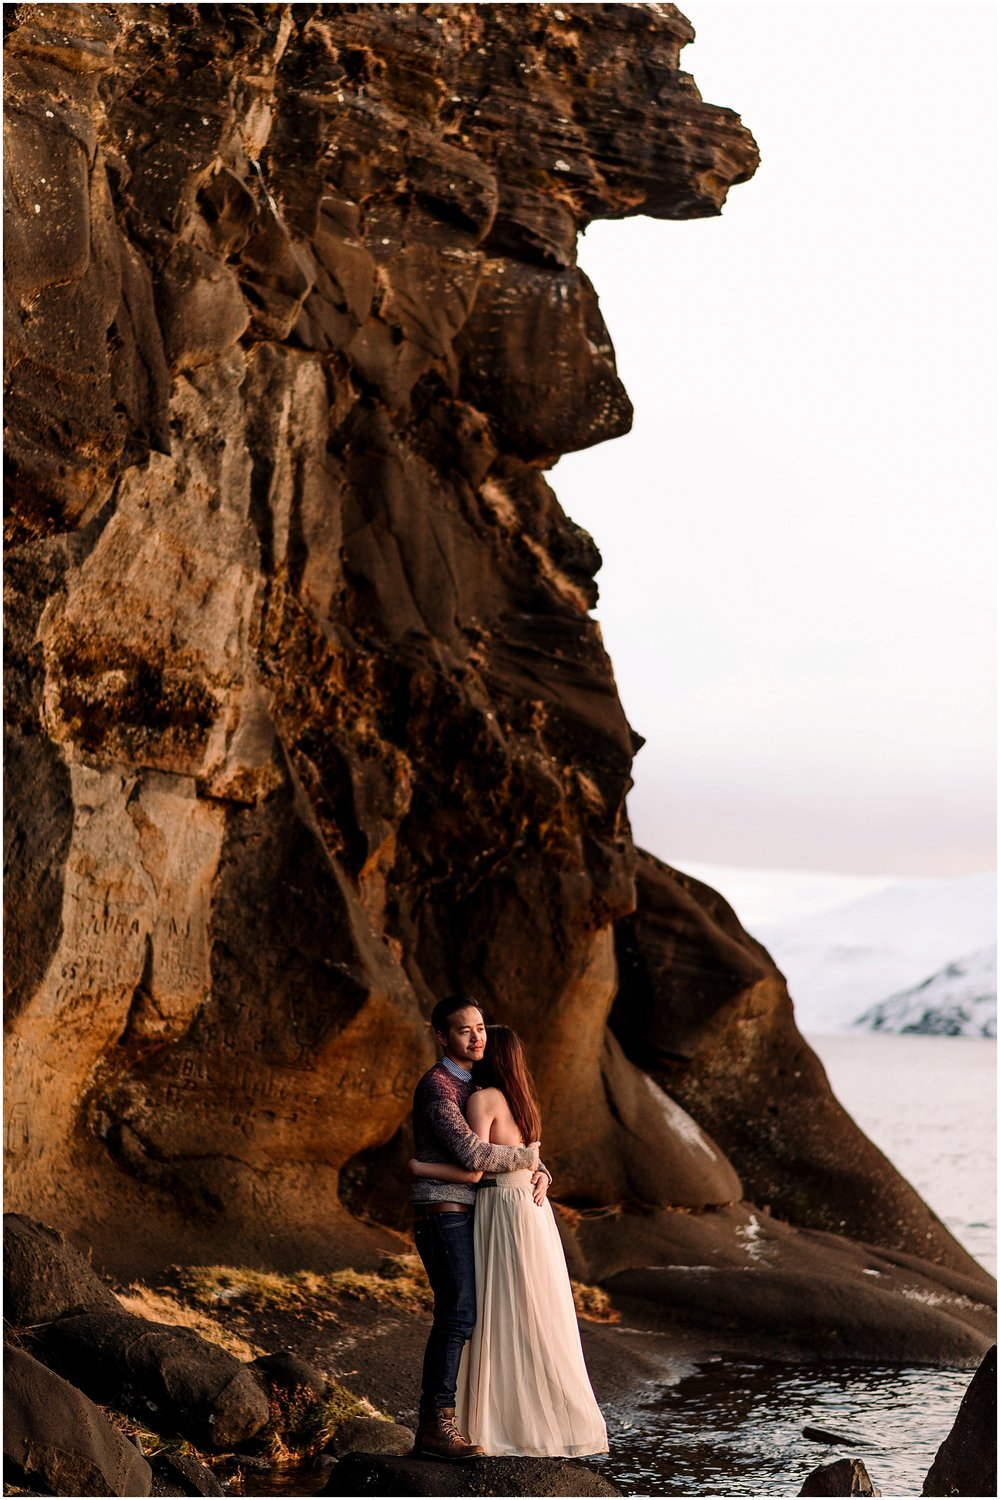 Hannah Leigh Photography Iceland Photo Session_7036.jpg